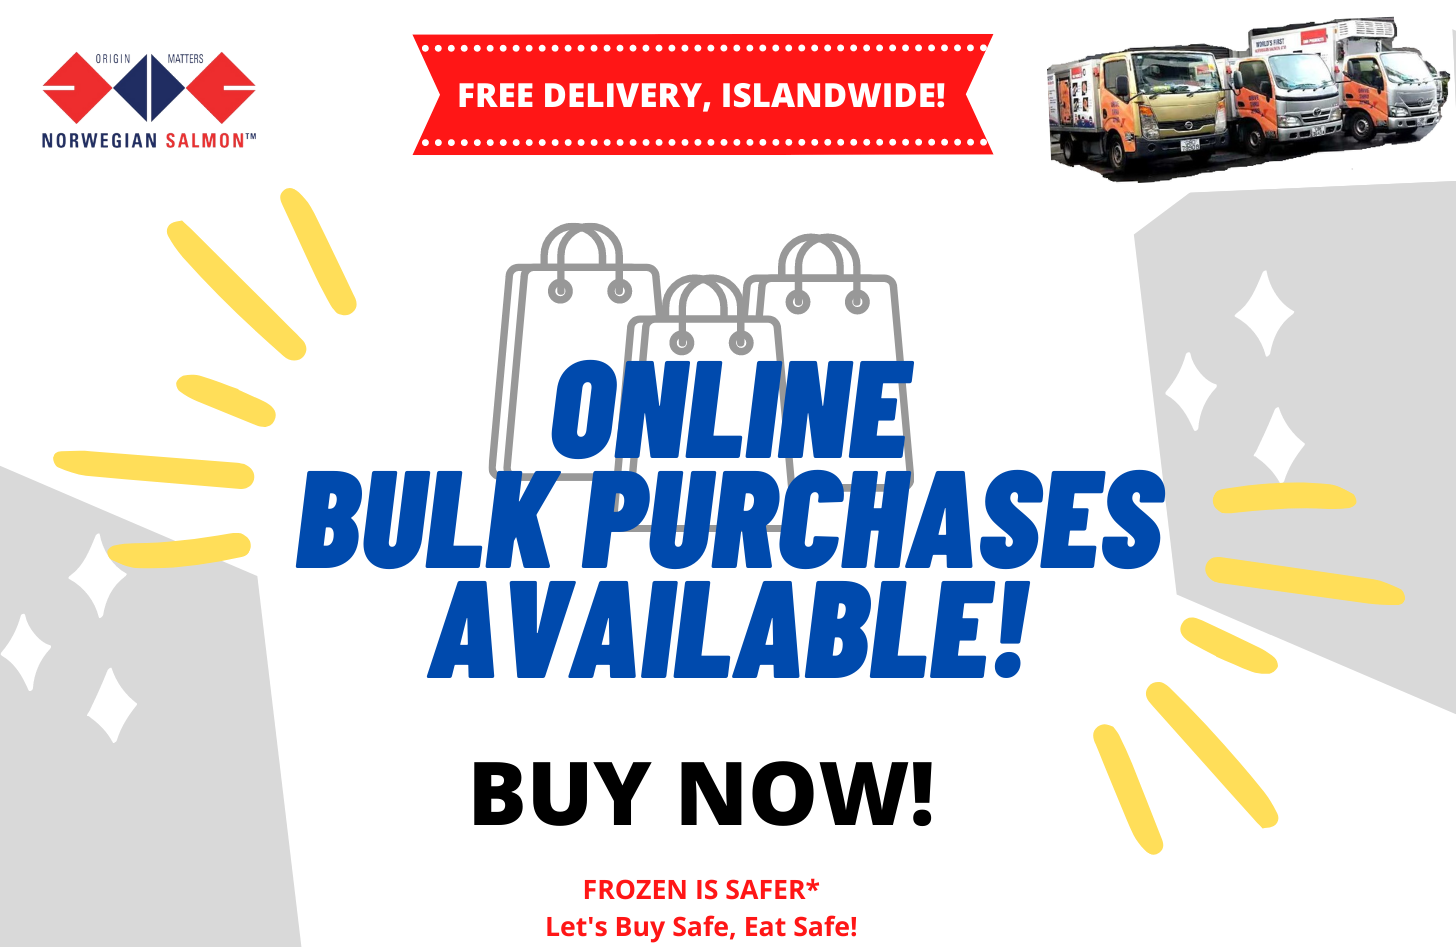 FREE DELIVERY, ISLANDWIDE!!!